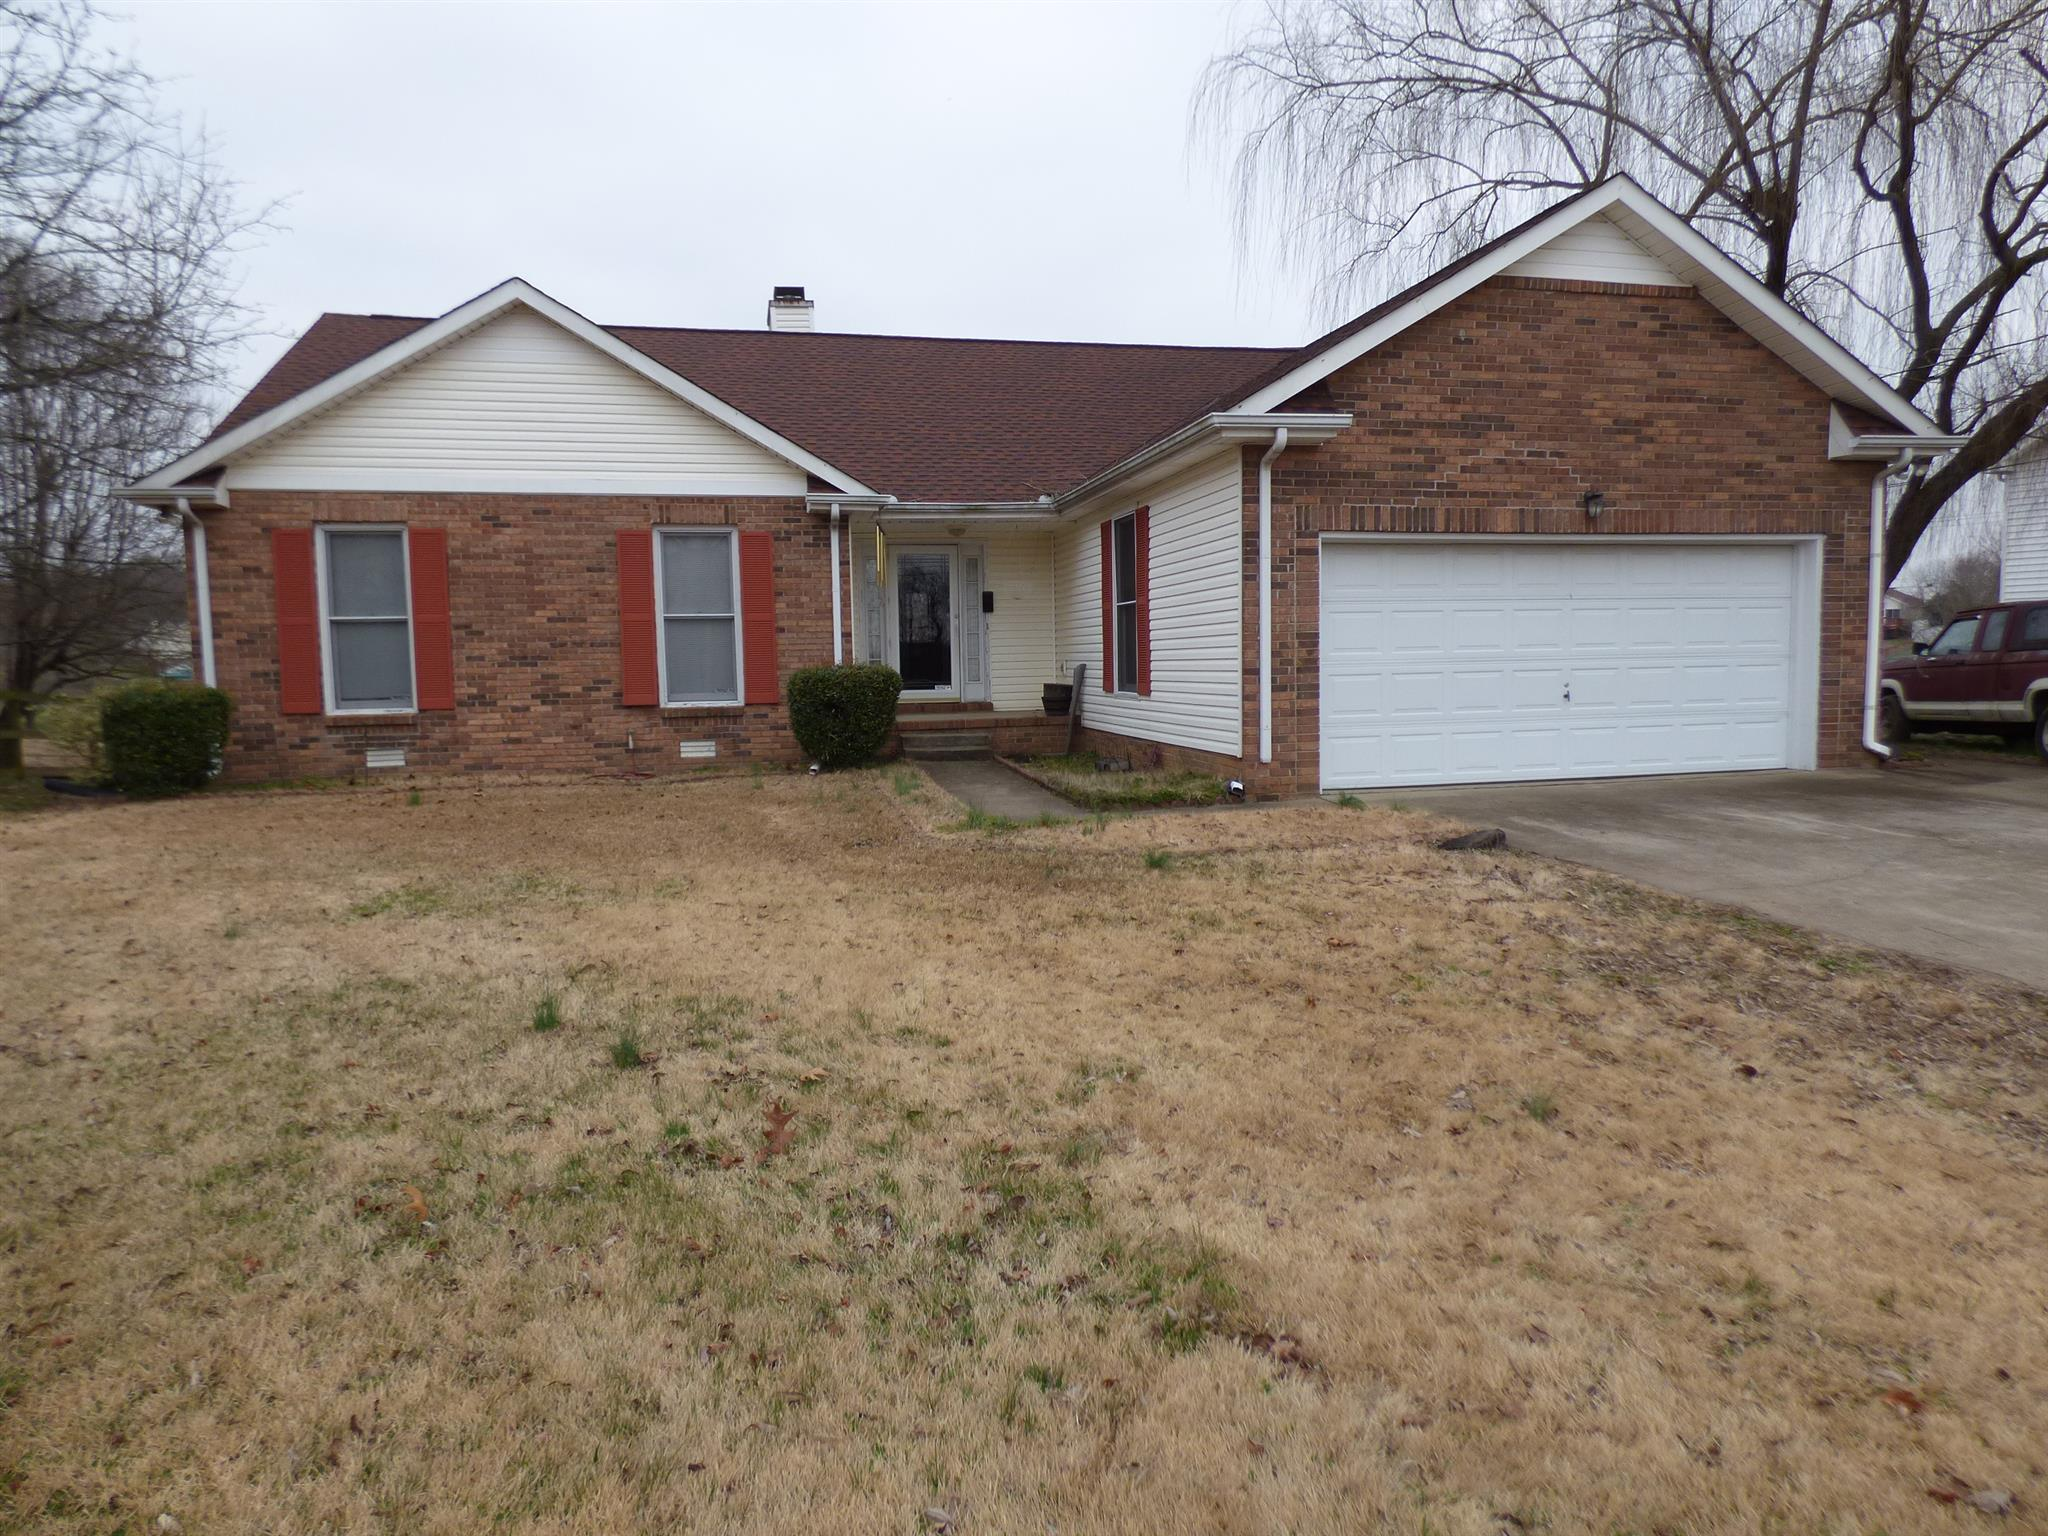 2441 Artie Manning Rd, Clarksville in Montgomery County County, TN 37042 Home for Sale